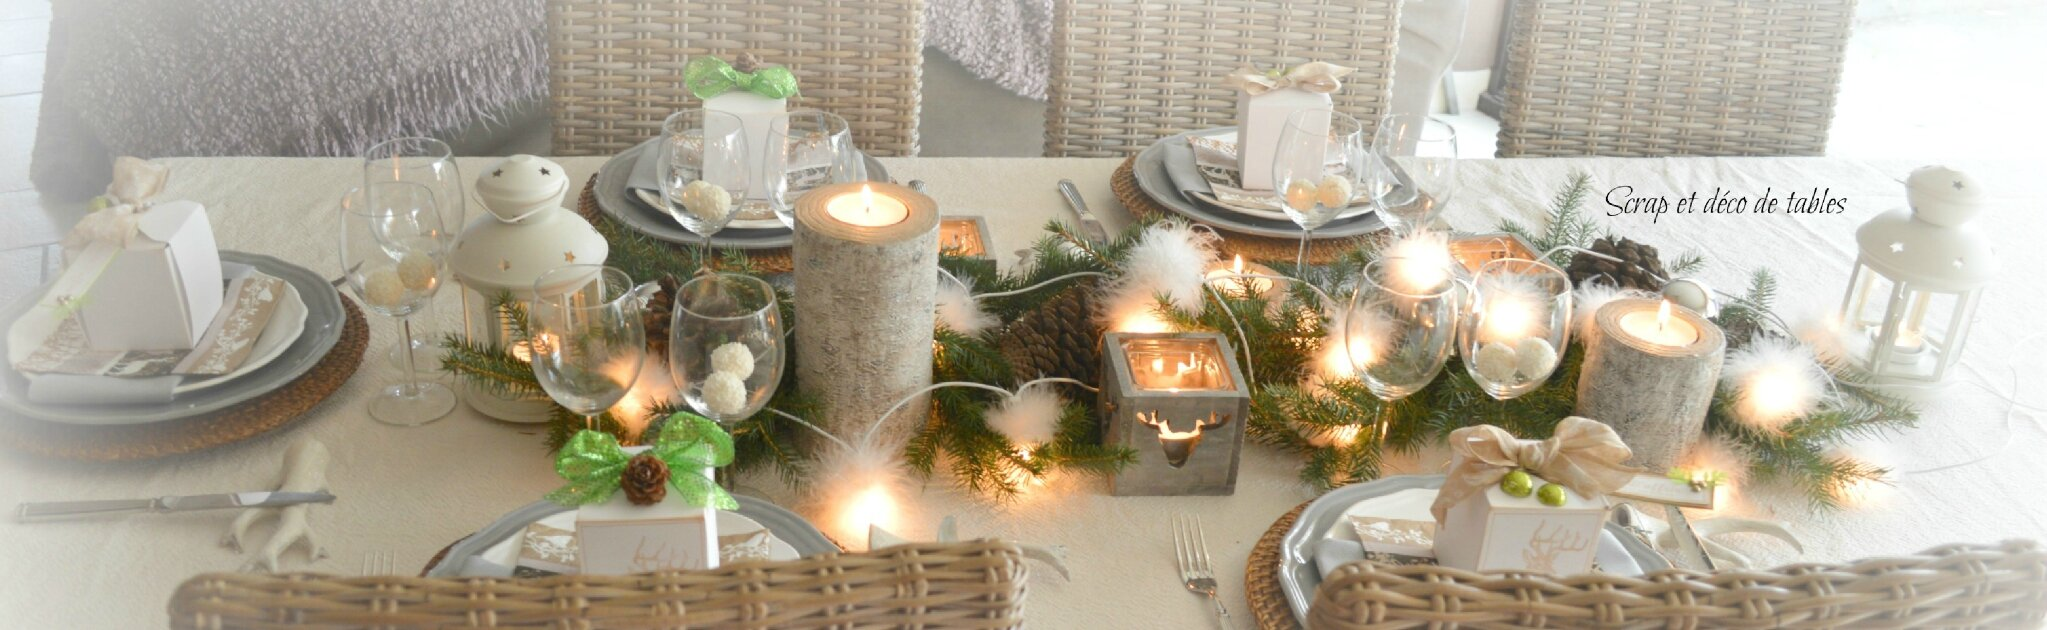 Deco noel nature - Decoration pour table de noel ...